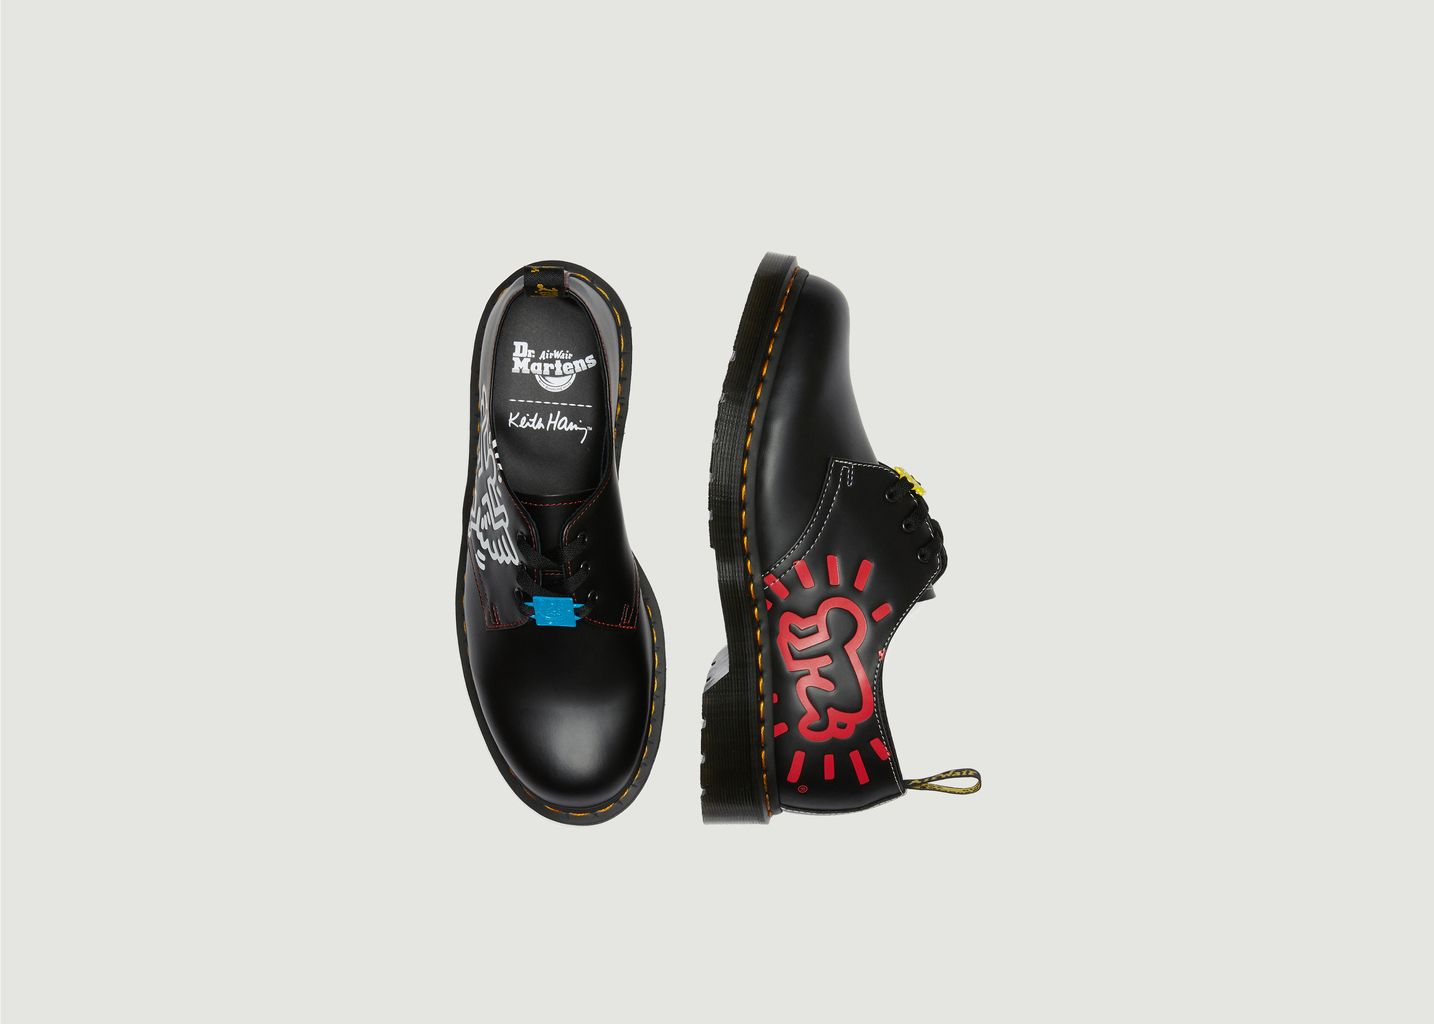 Derbies 1461 Keith Haring - Dr. Martens